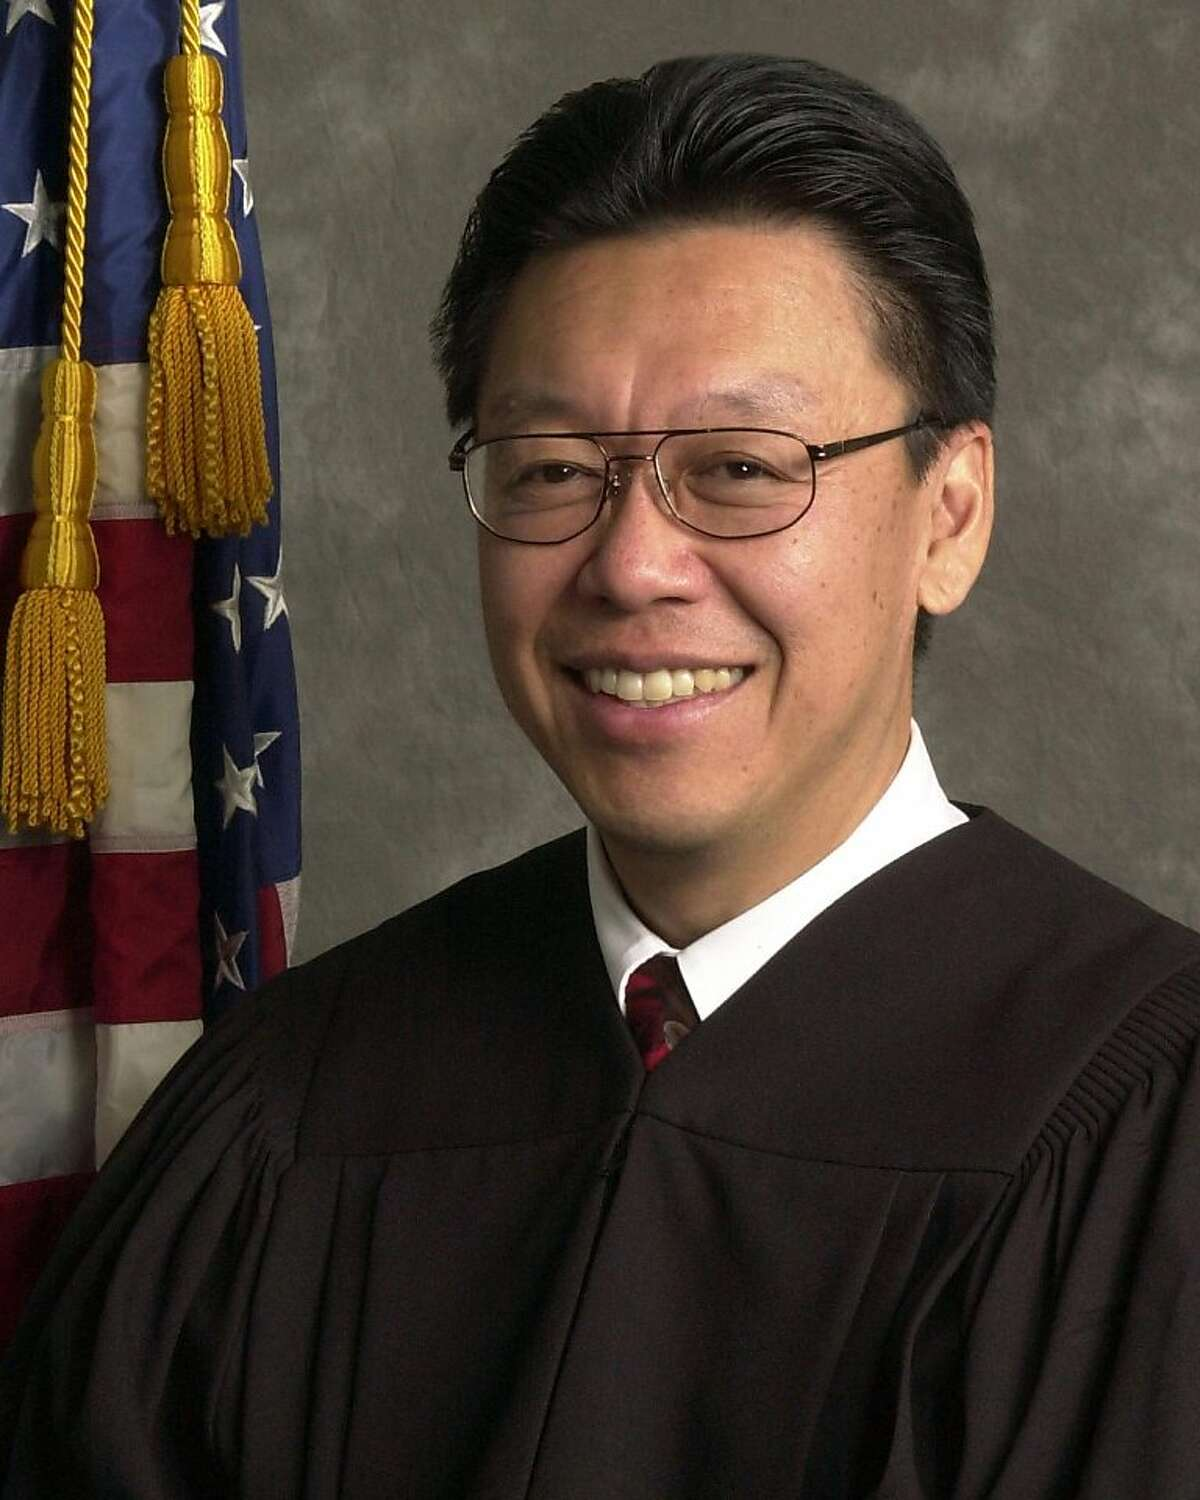 U.S. Magistrate Edward Chen, who as a lawyer helped persuade a judge in 1983 to overturn a Japanese-American manês conviction for defying World War II internment, was nominated by President Obama on Friday to the U.S. District Court in San Francisco, where no Asian-American has ever been a federal judge.